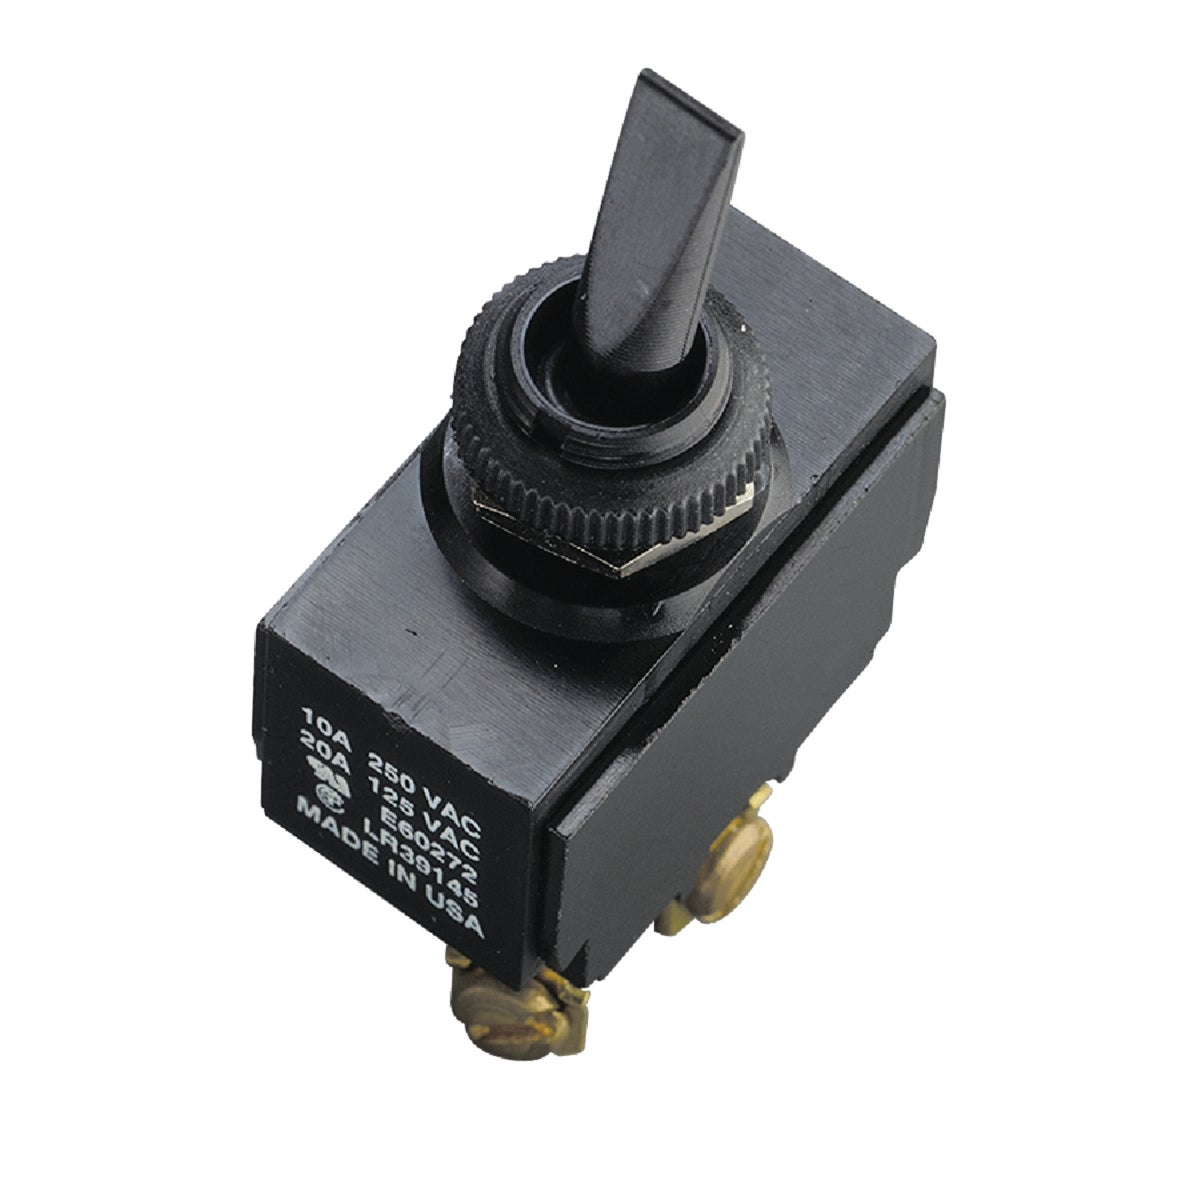 NONMETALIC TOGGLE SWITCH - GSW-19 by G B Electrical Inc